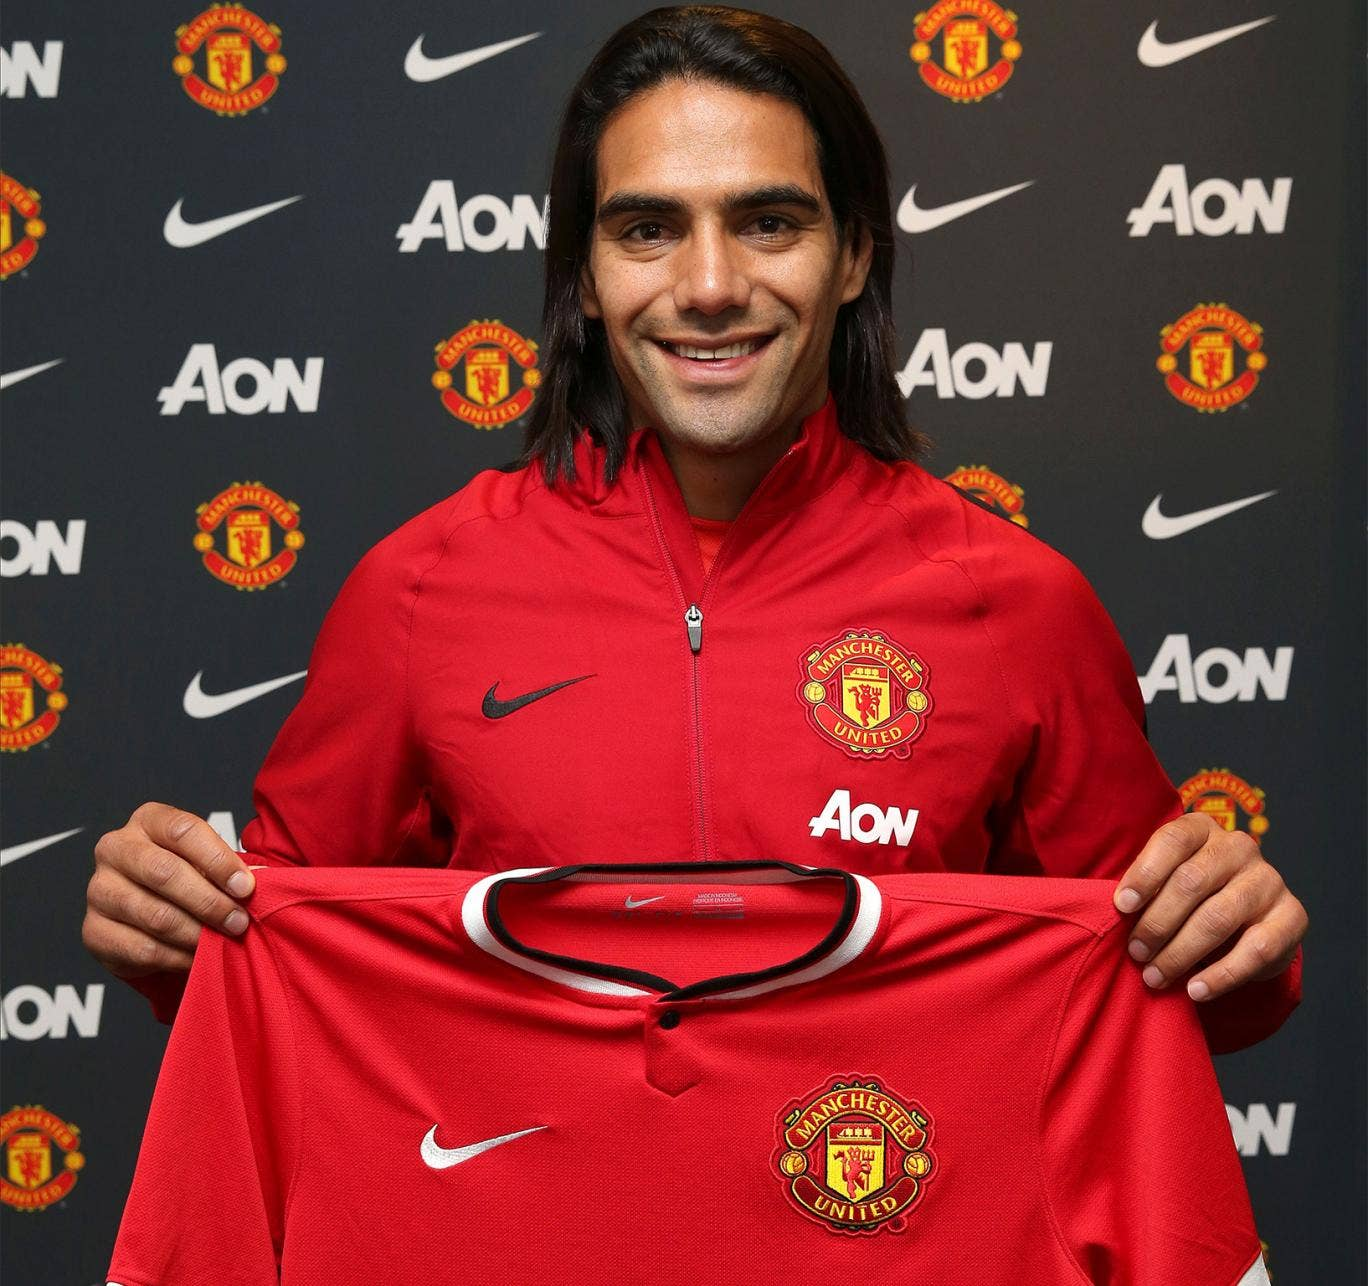 Radamel Falcao poses with his United shirt